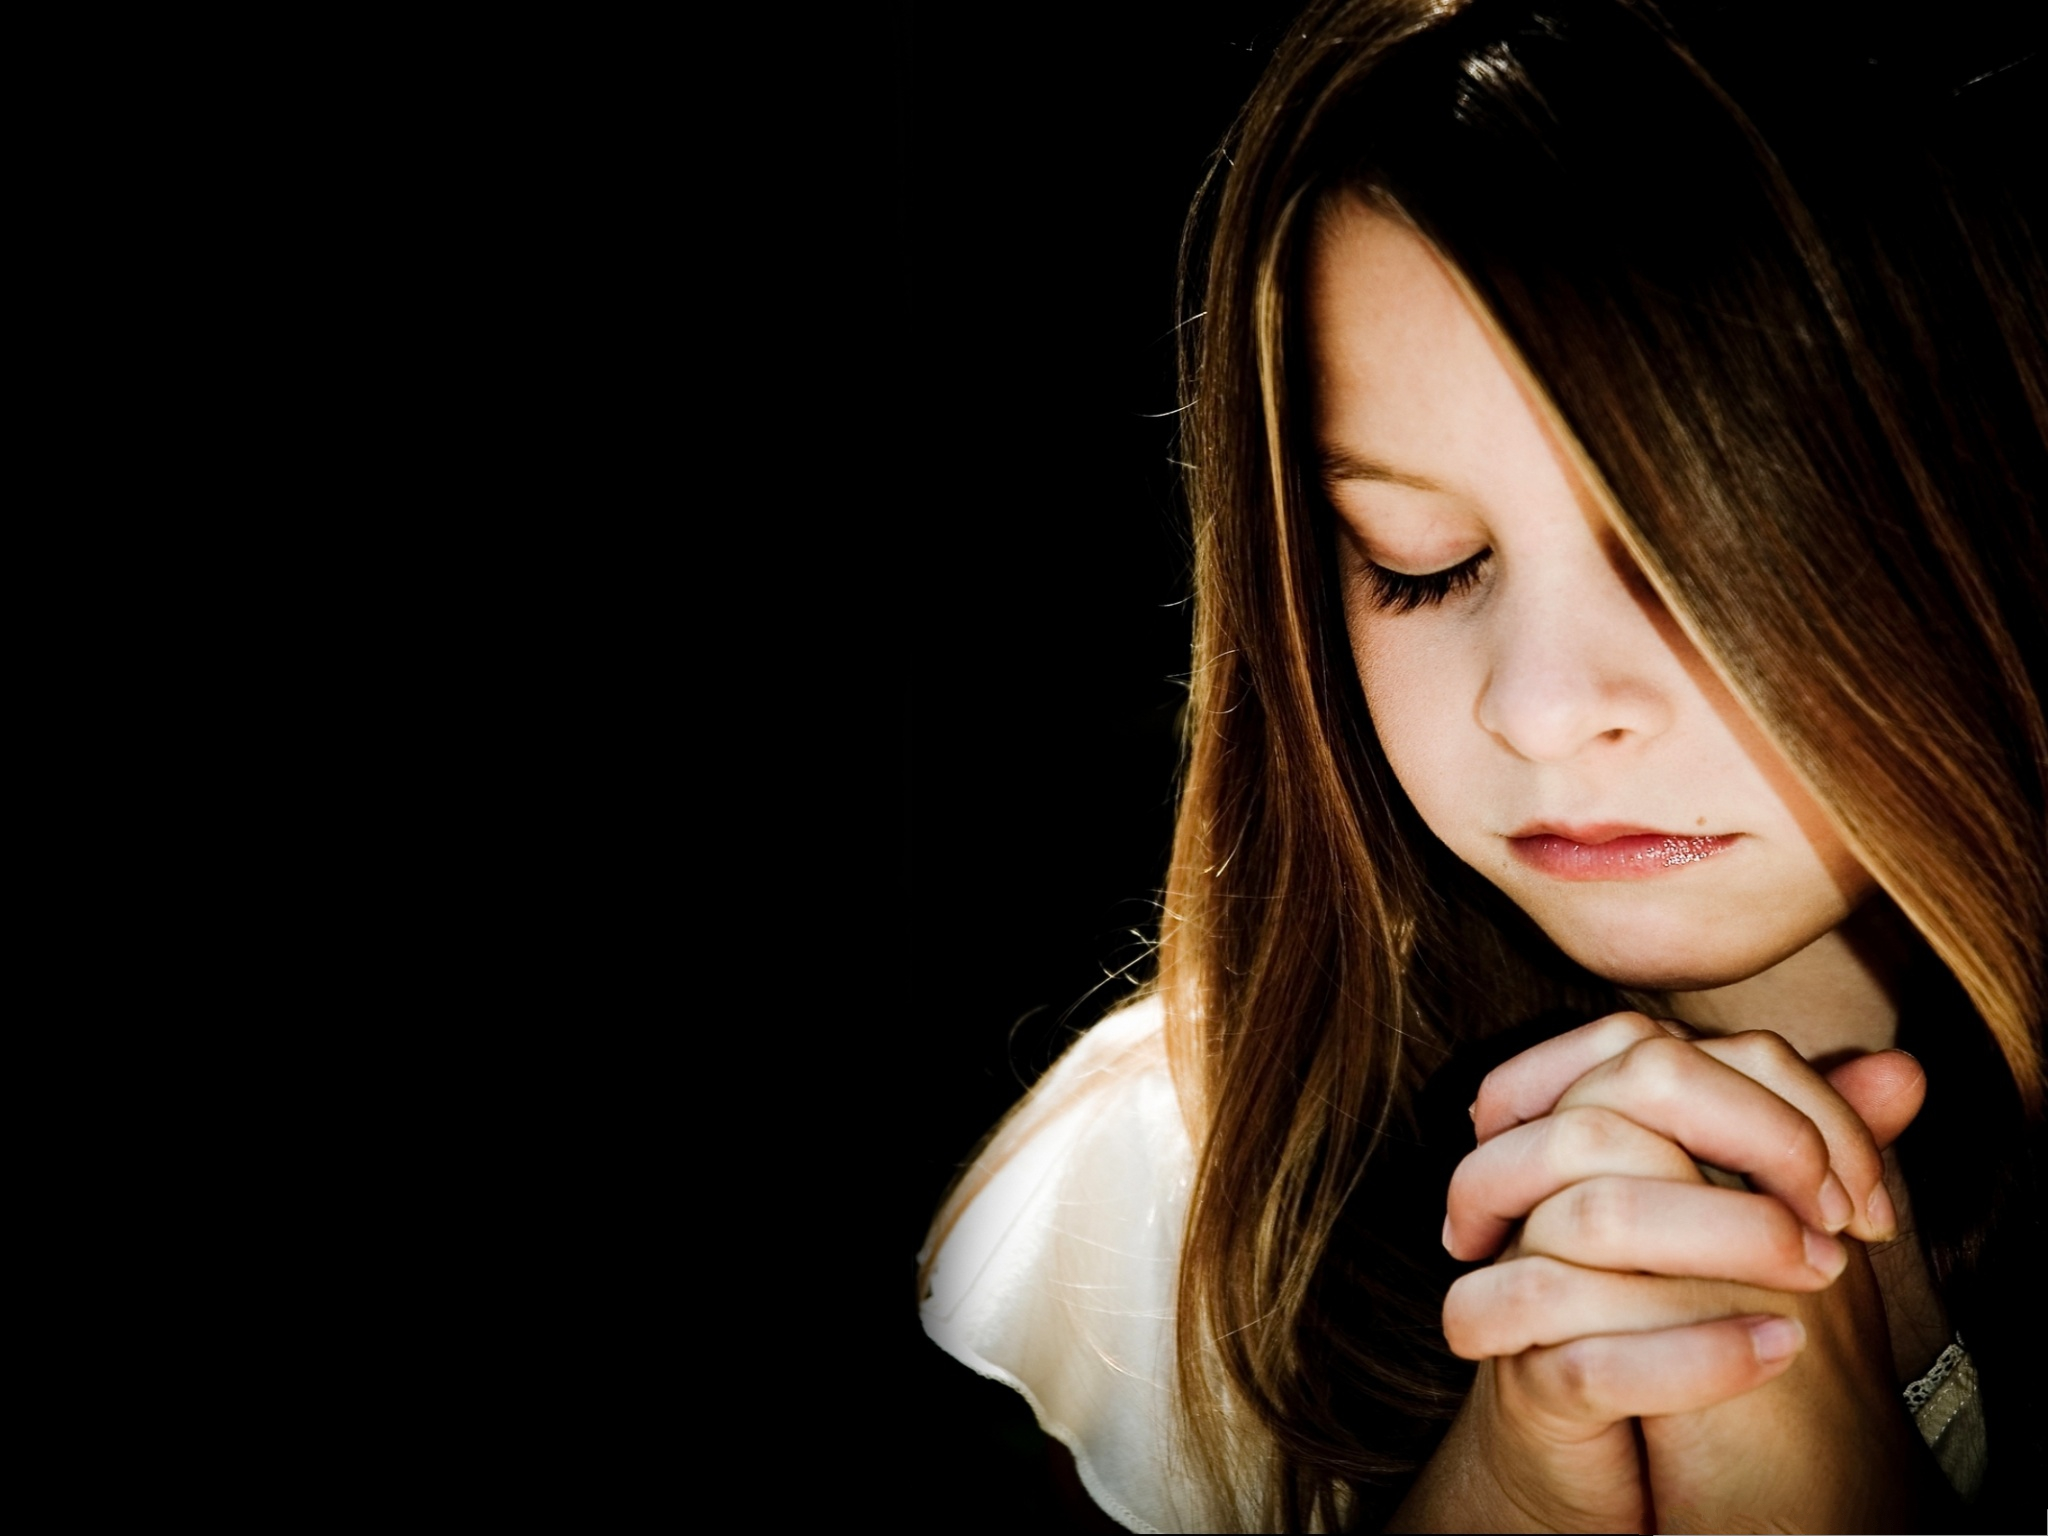 Computer Background Wallpaper, Baby Girl Praying, Someone ...